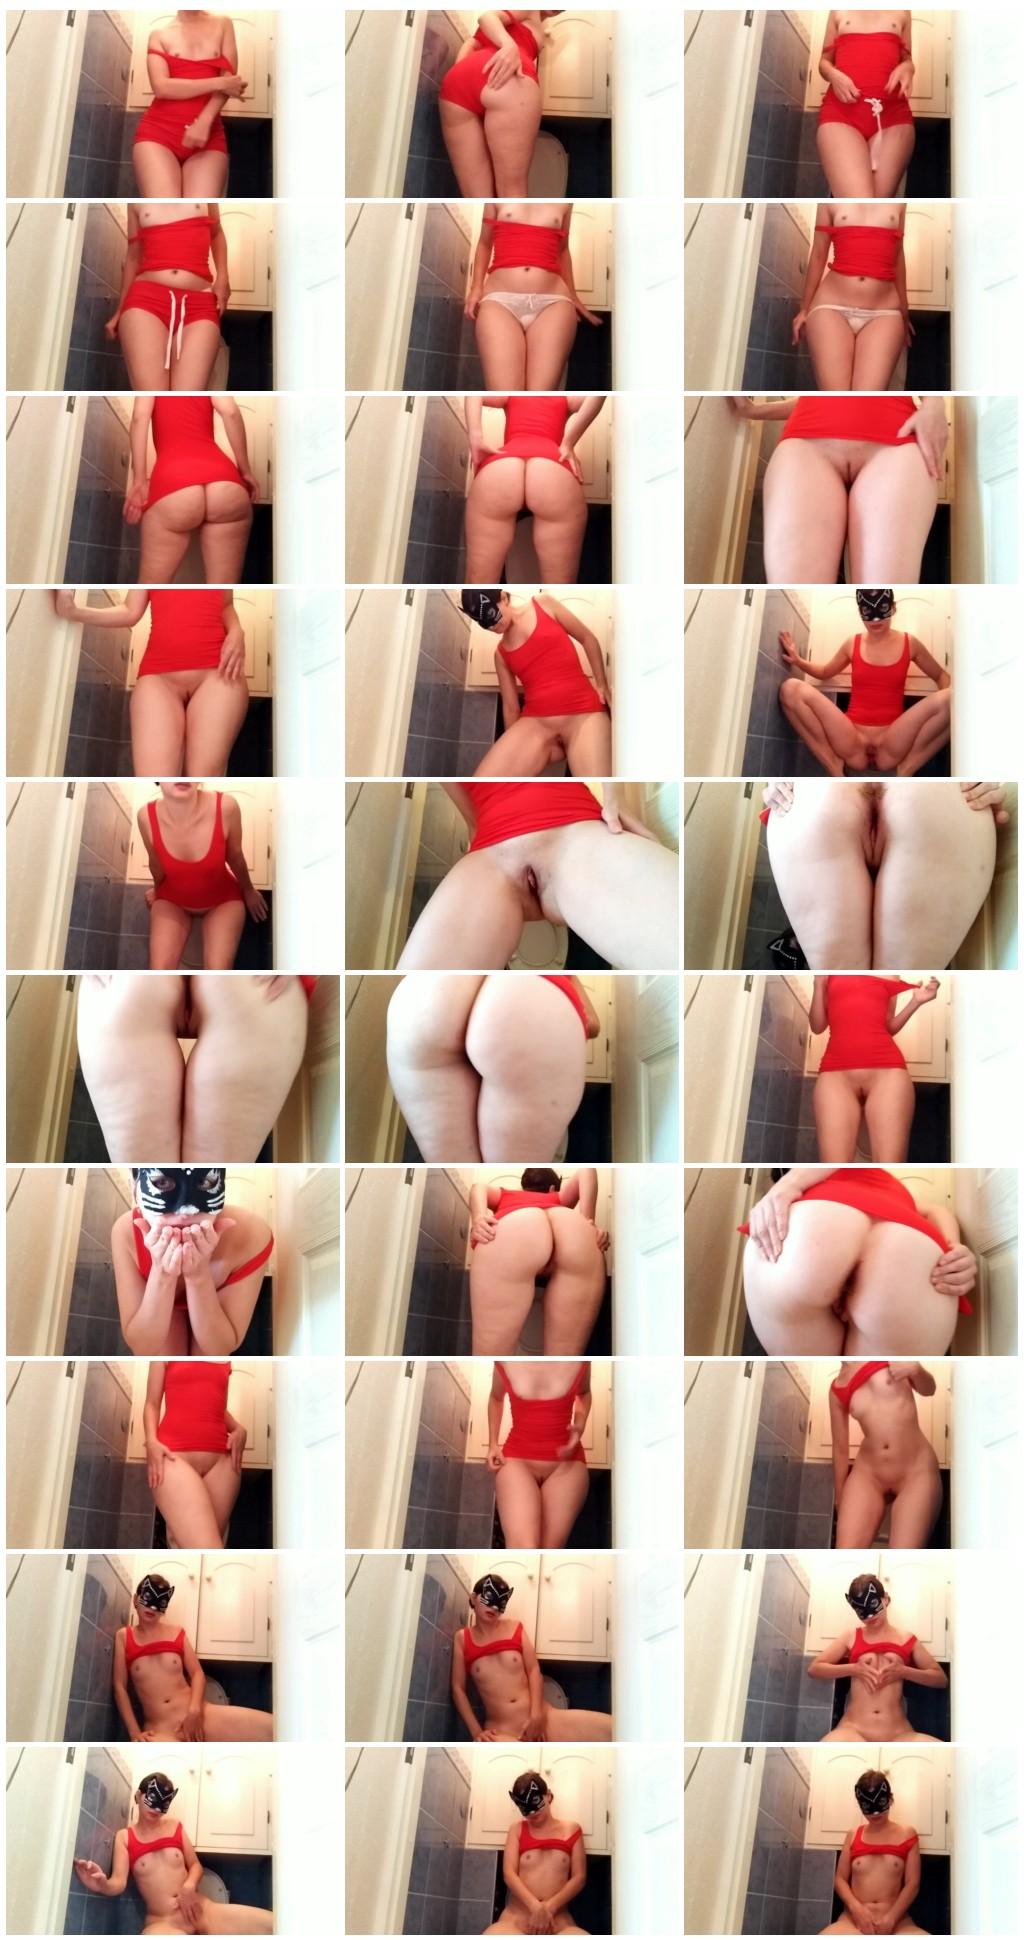 Nastygirl Hot Stiptease Pooping and Masturbation in Toilet Scat solo shit defecation Shitty ass Masturbation thumb - Nastygirl - Hot Stiptease Pooping and Masturbation in Toilet [Scat solo, shit, defecation,  Shitty ass, Masturbation]